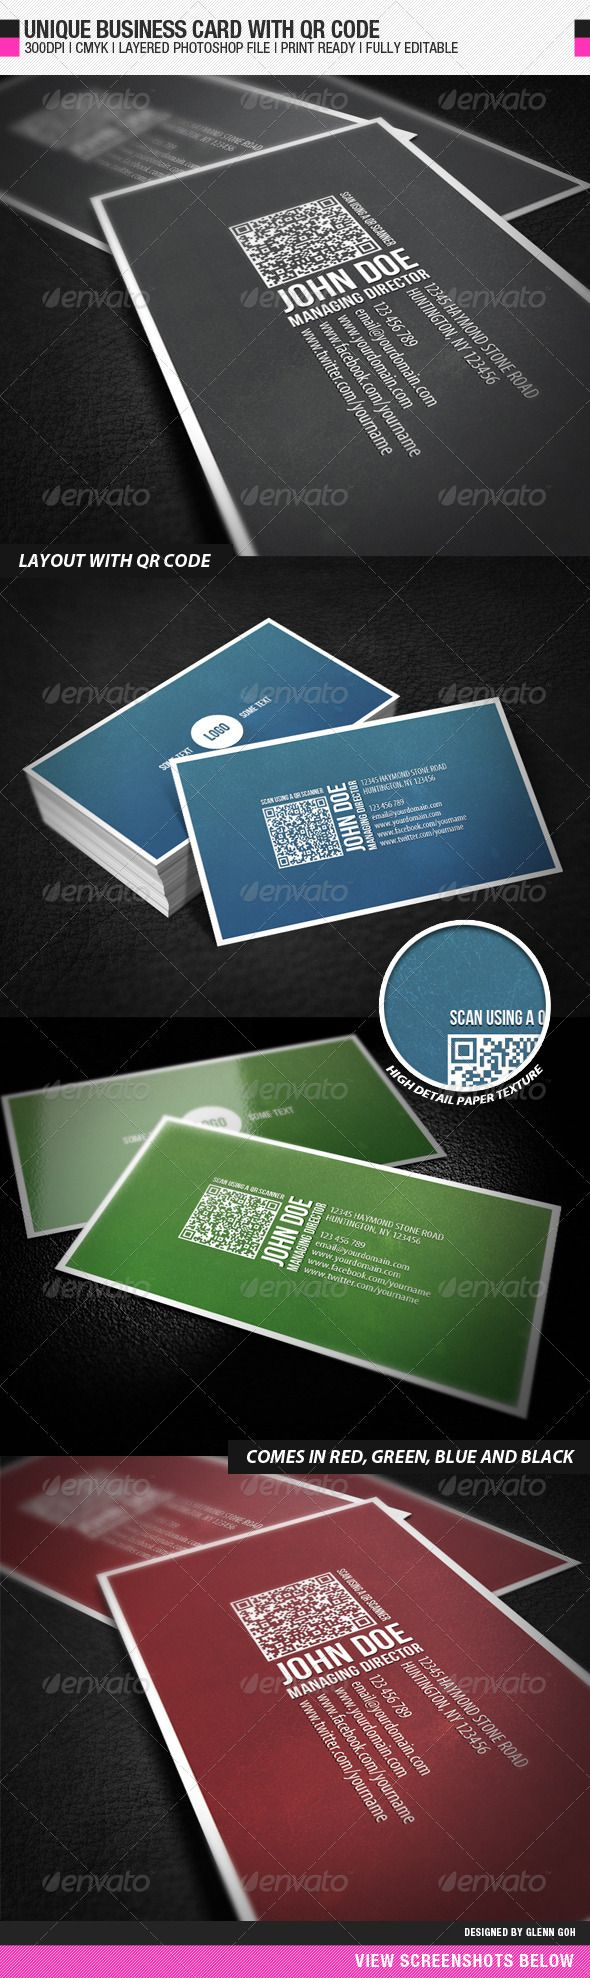 Business card with qr code qr codes business cards and unique business card with qr code reheart Image collections